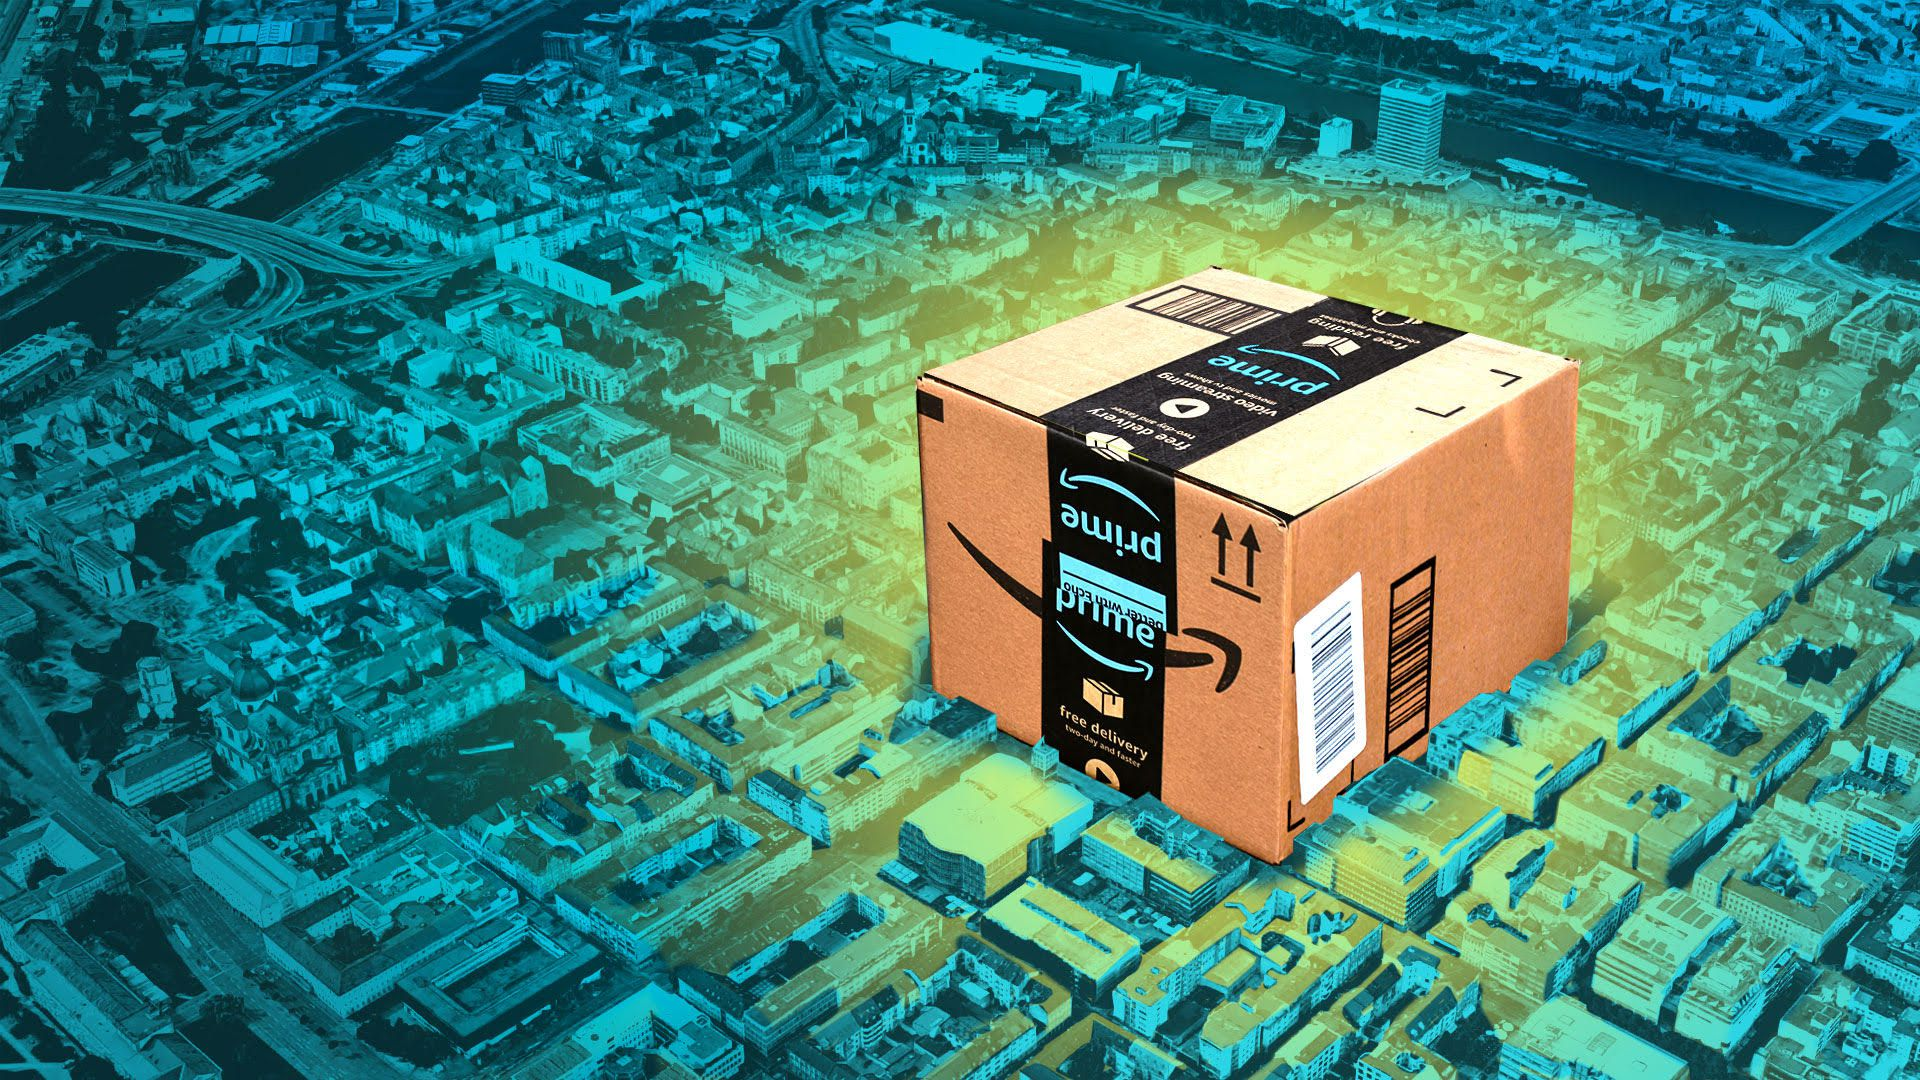 Illustration of an Amazon package in a city